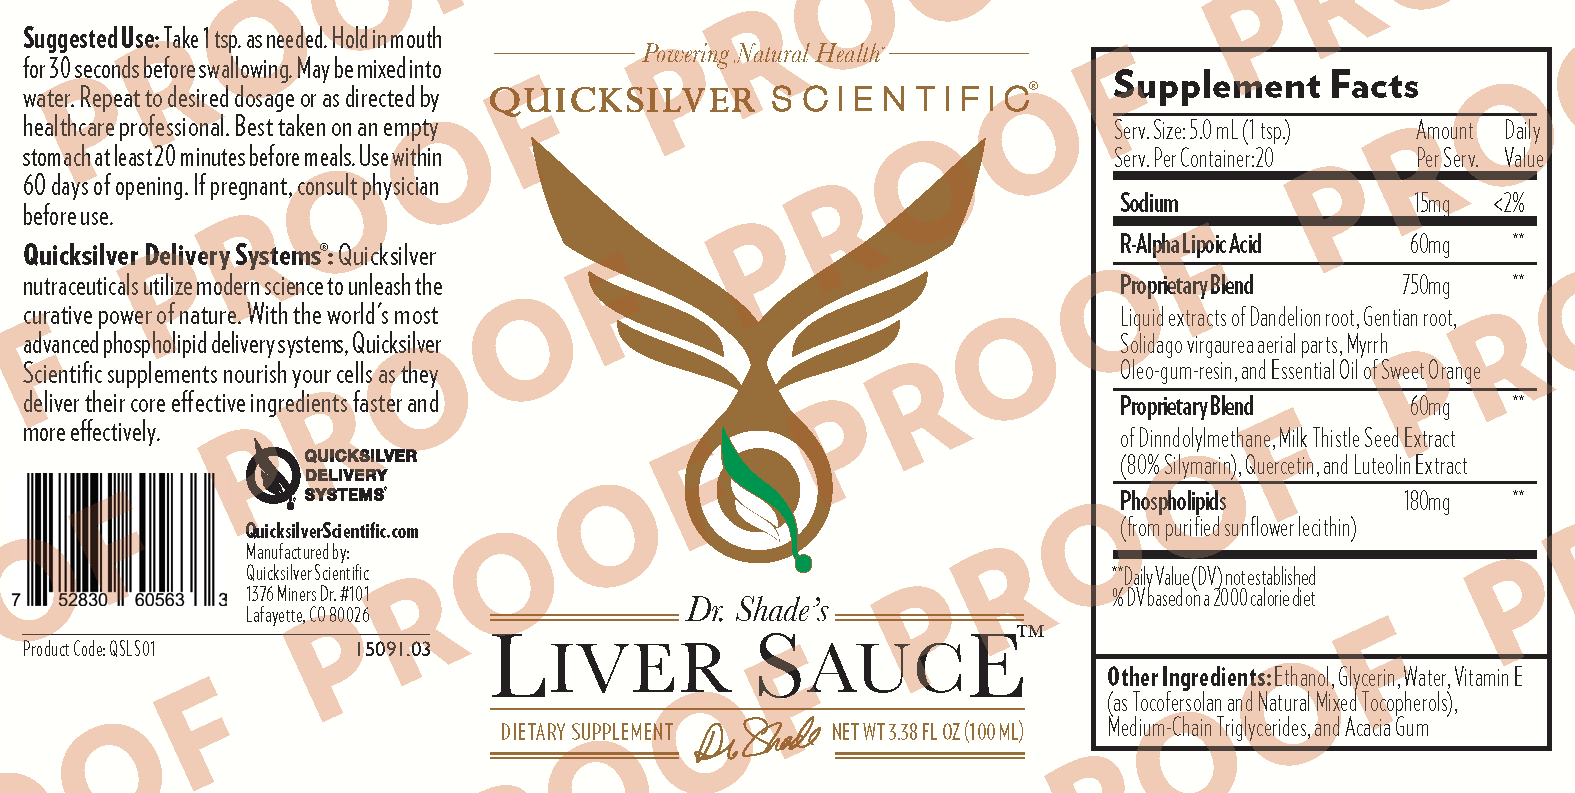 Liver Sauce 100ml Herbal Line 1509103 PROOMEGA 2000 60/120 SOFTGELS